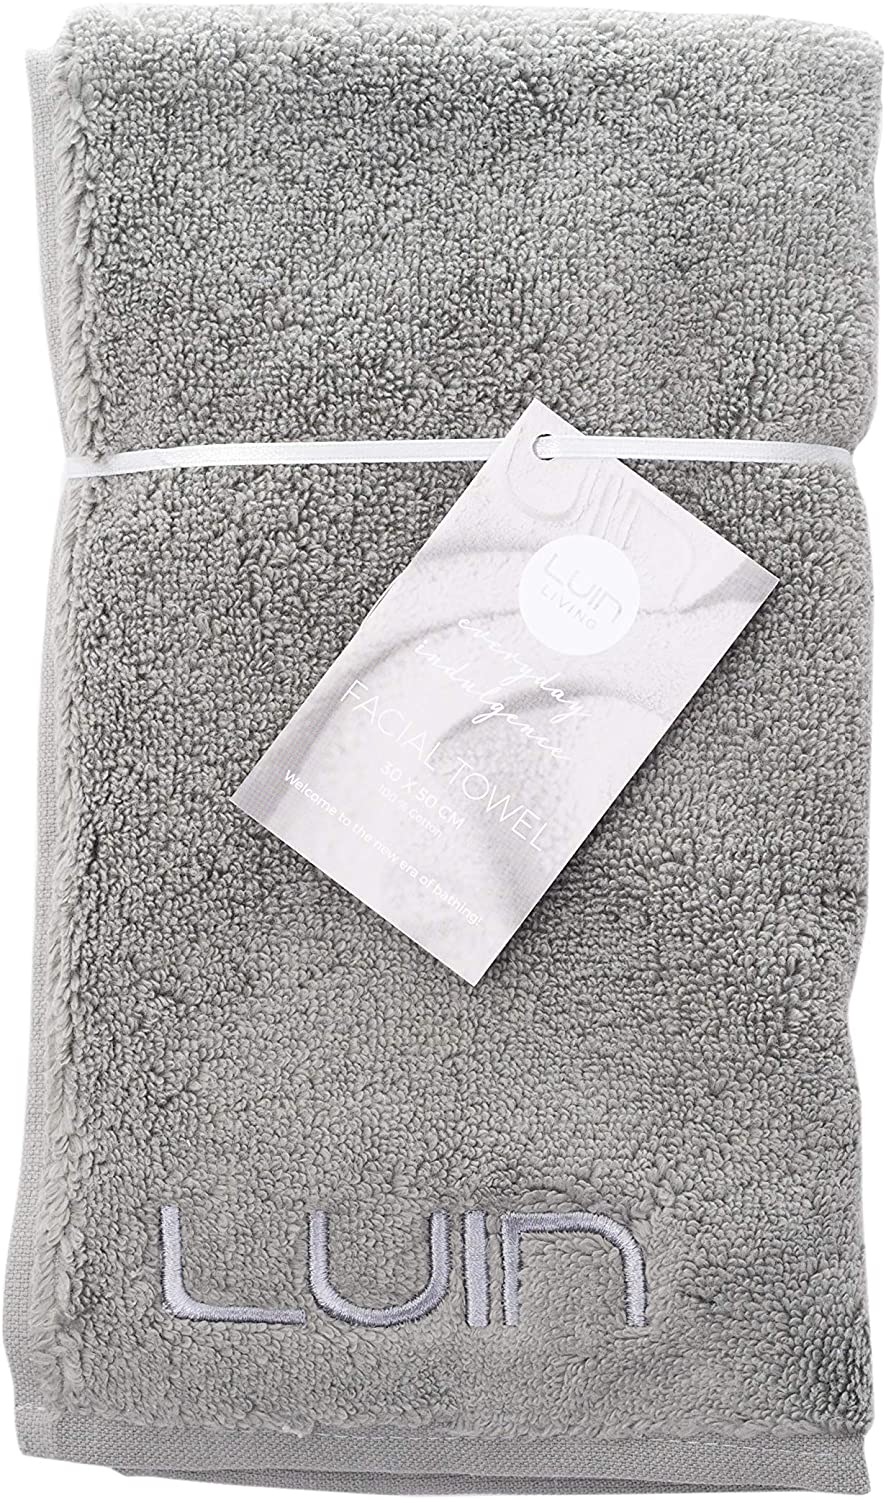 Luin Living Luxury Soft Turkish Cotton Facial Towel, 12 x 20 Inches, Granite